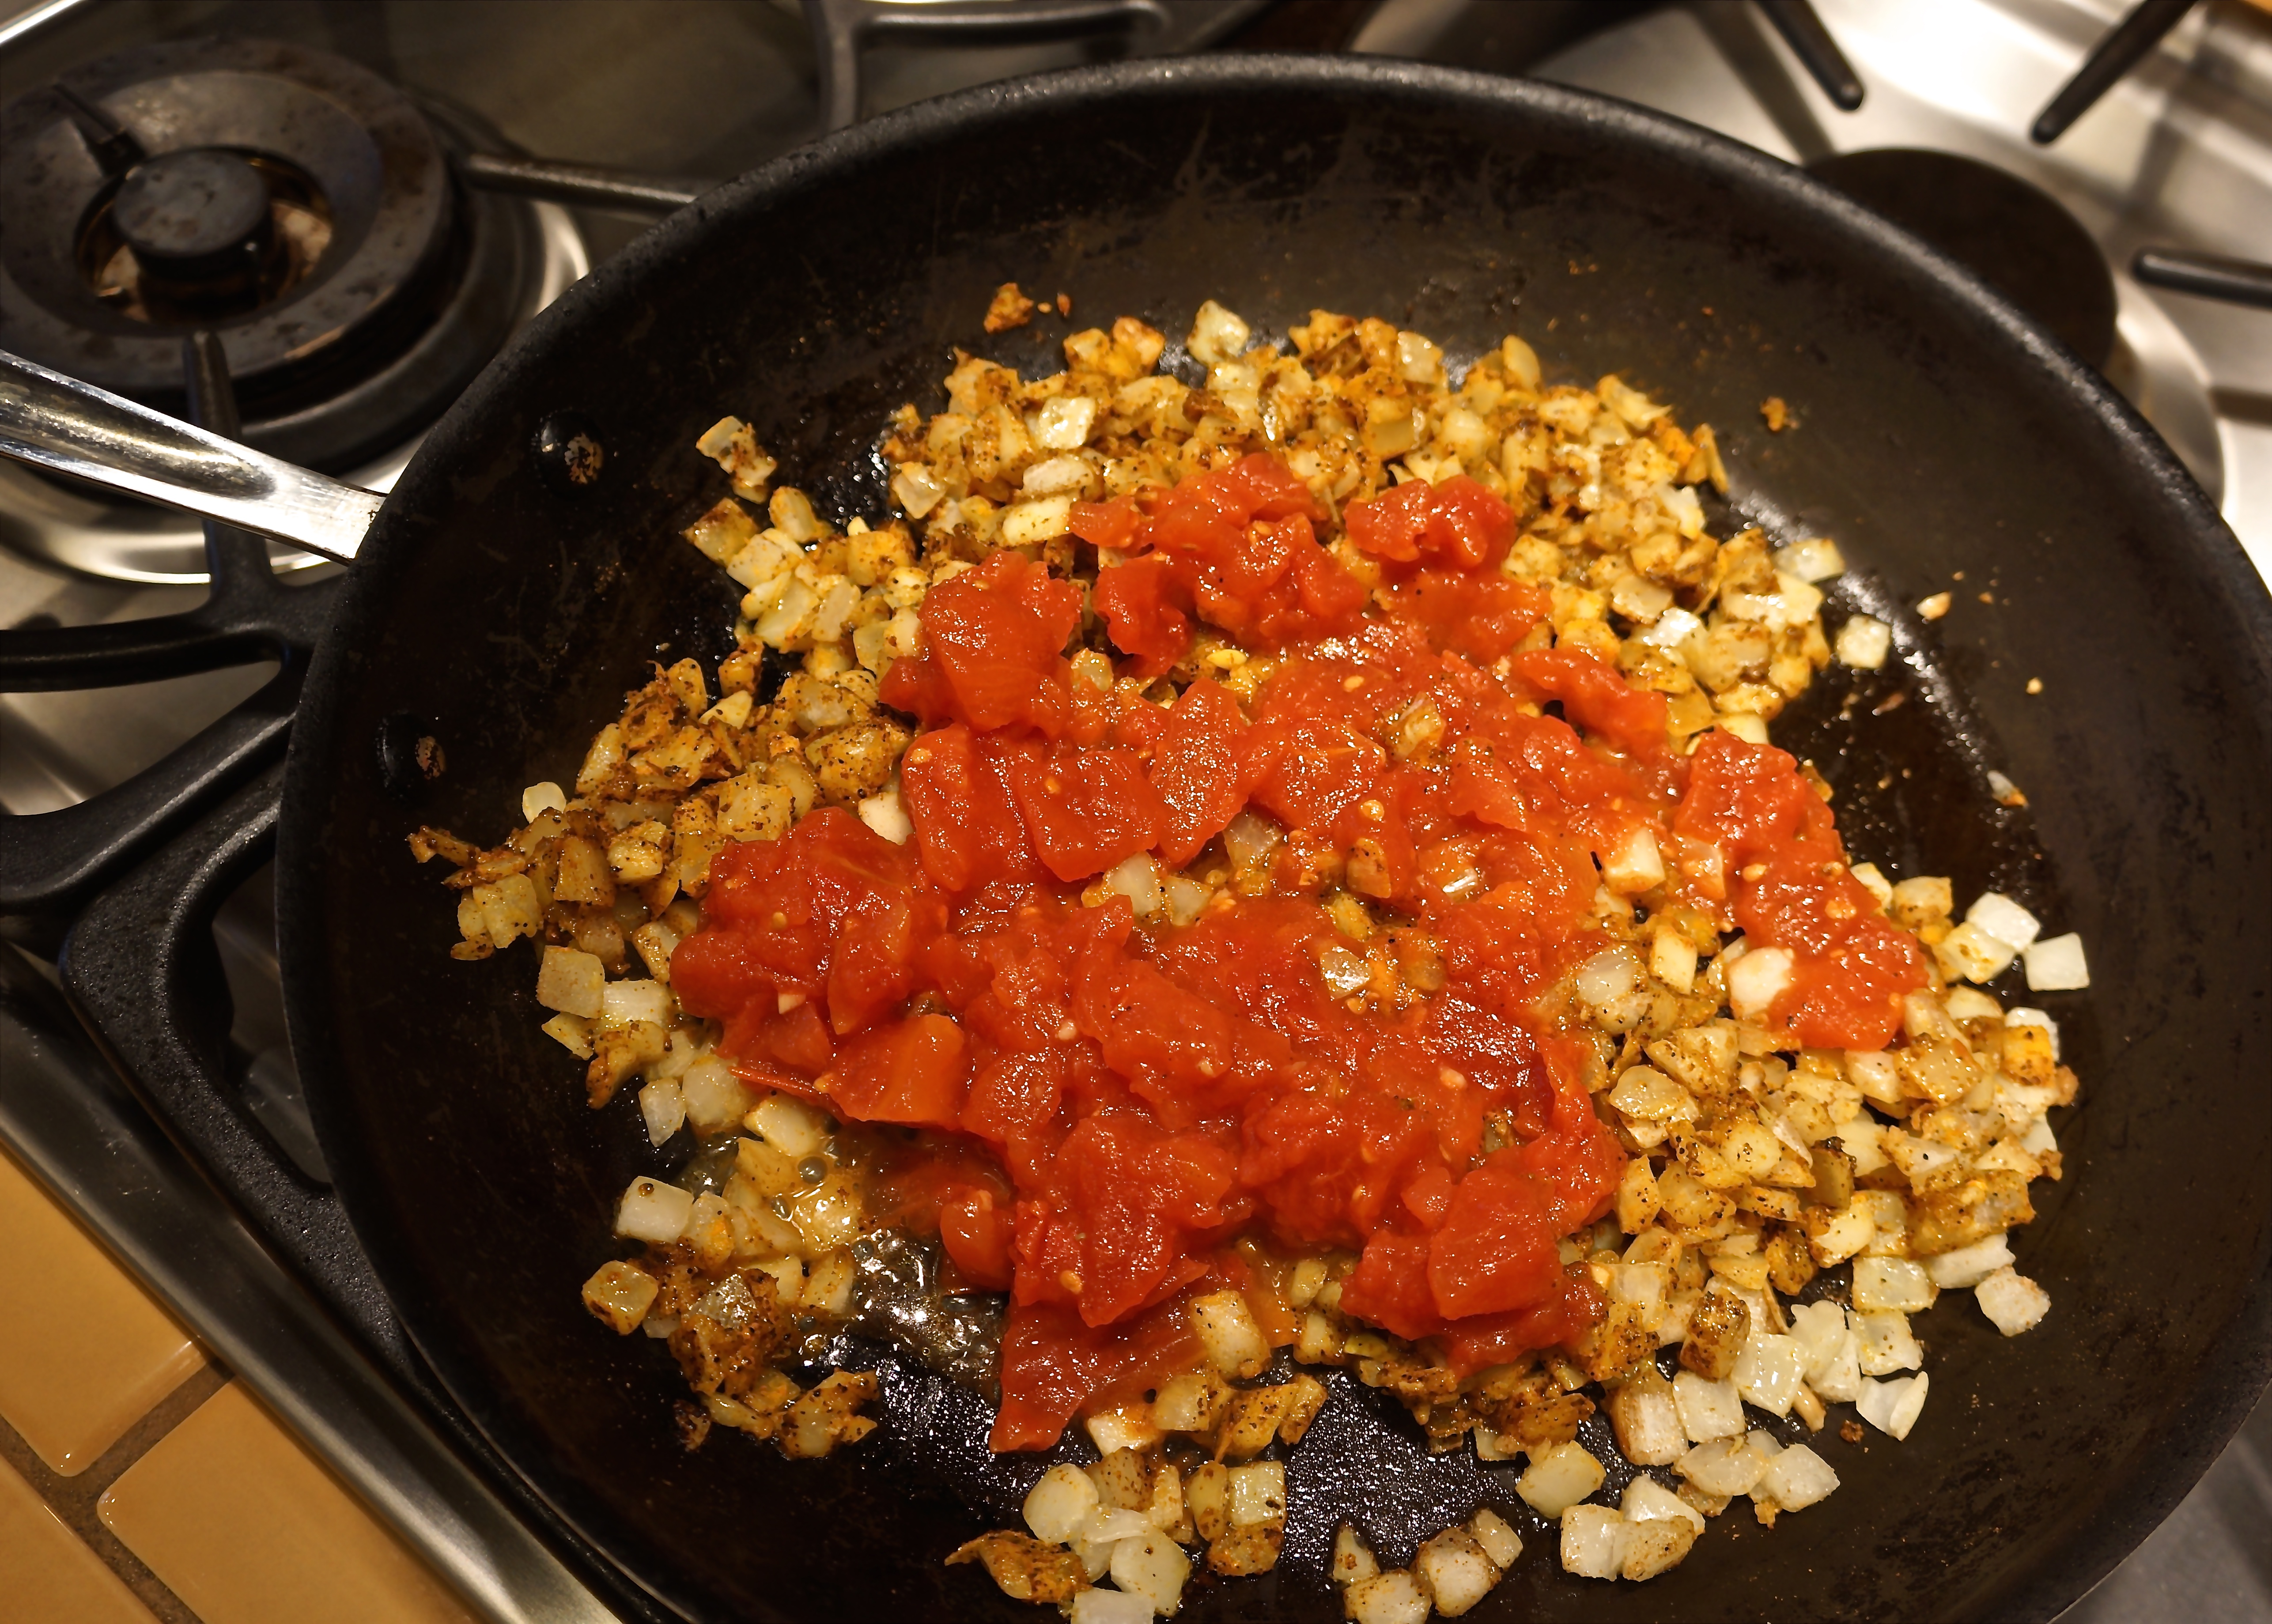 Add chopped tomatoes. Cook stirring until onions are soft.